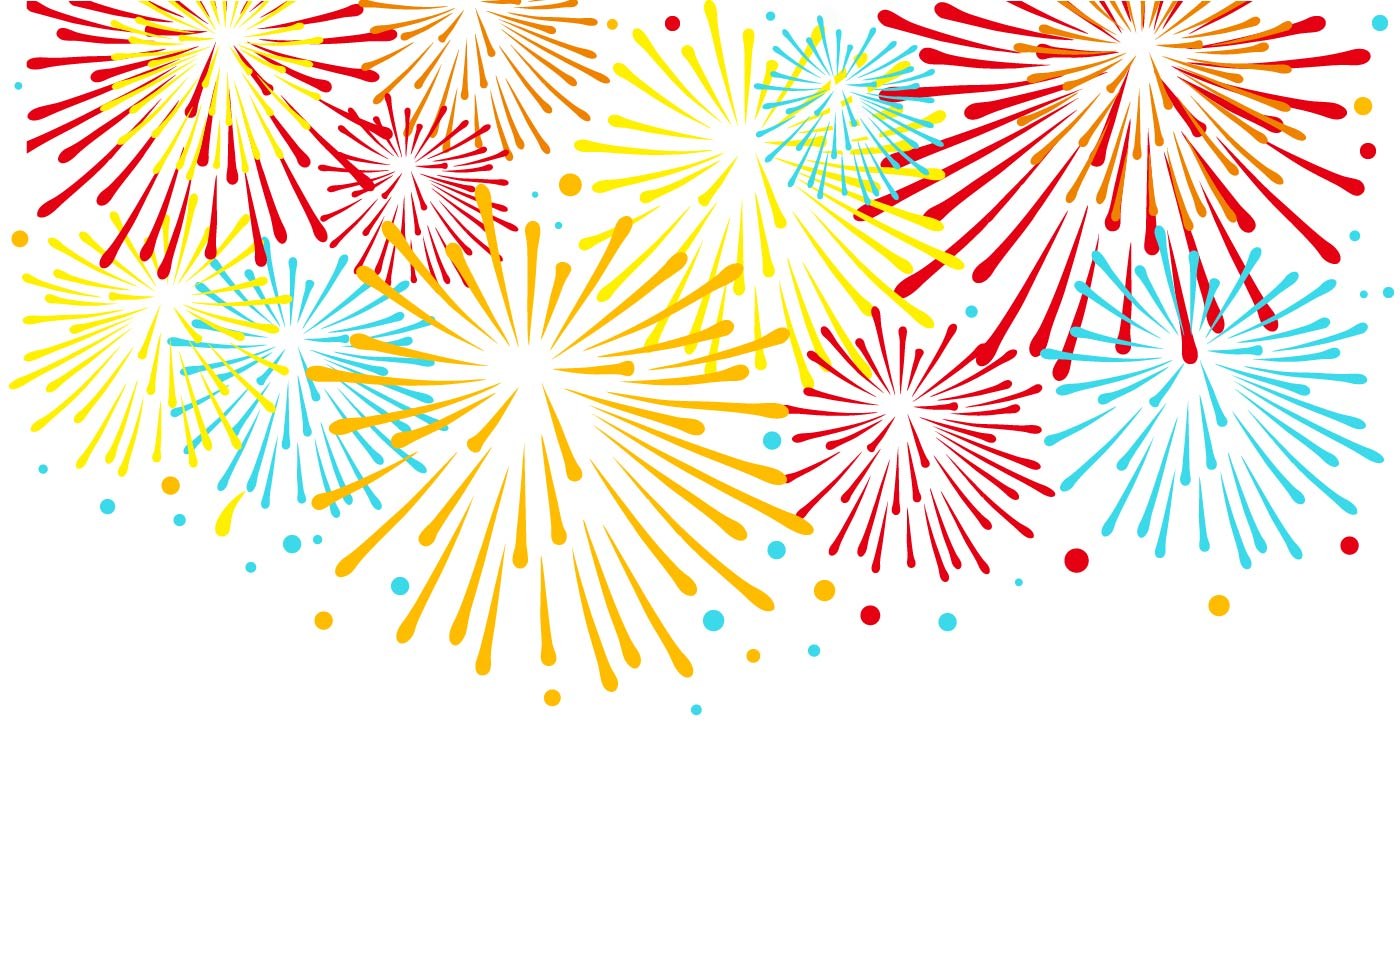 Colorful Fireworks Vector - Download Free Vector Art ...Fireworks Icon